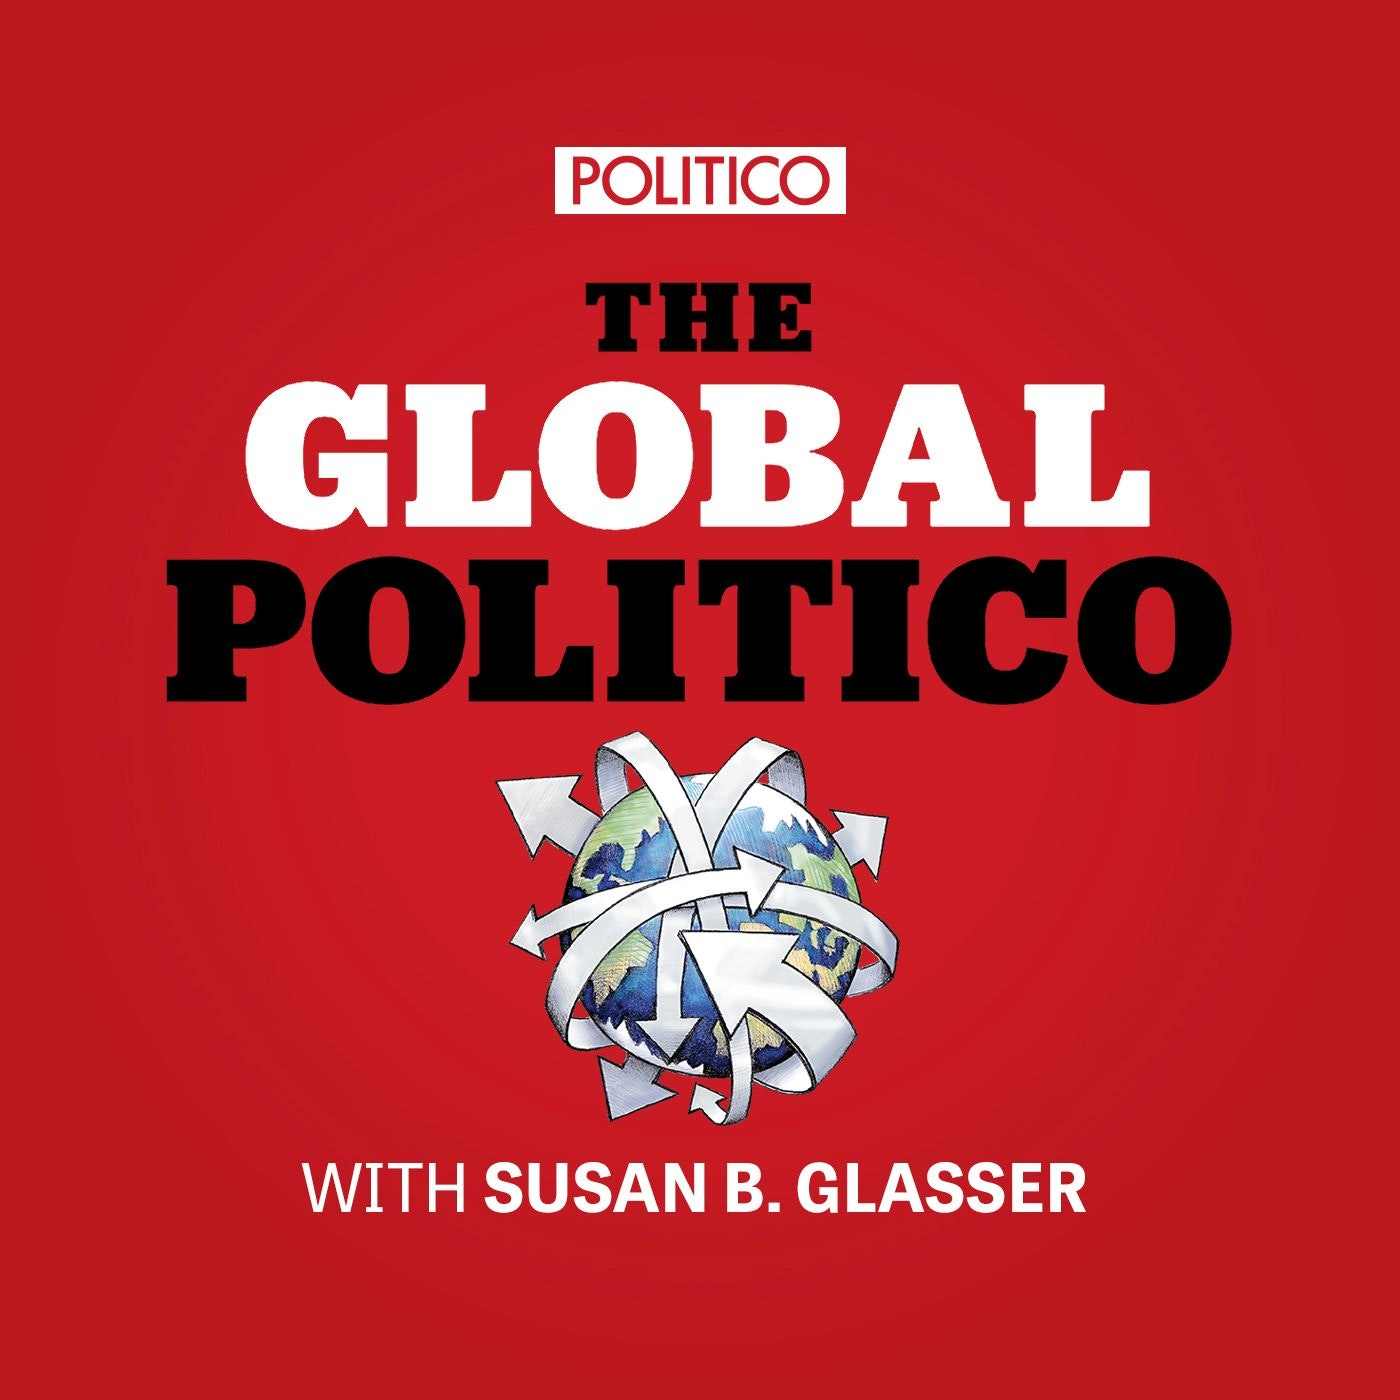 The Global Politico